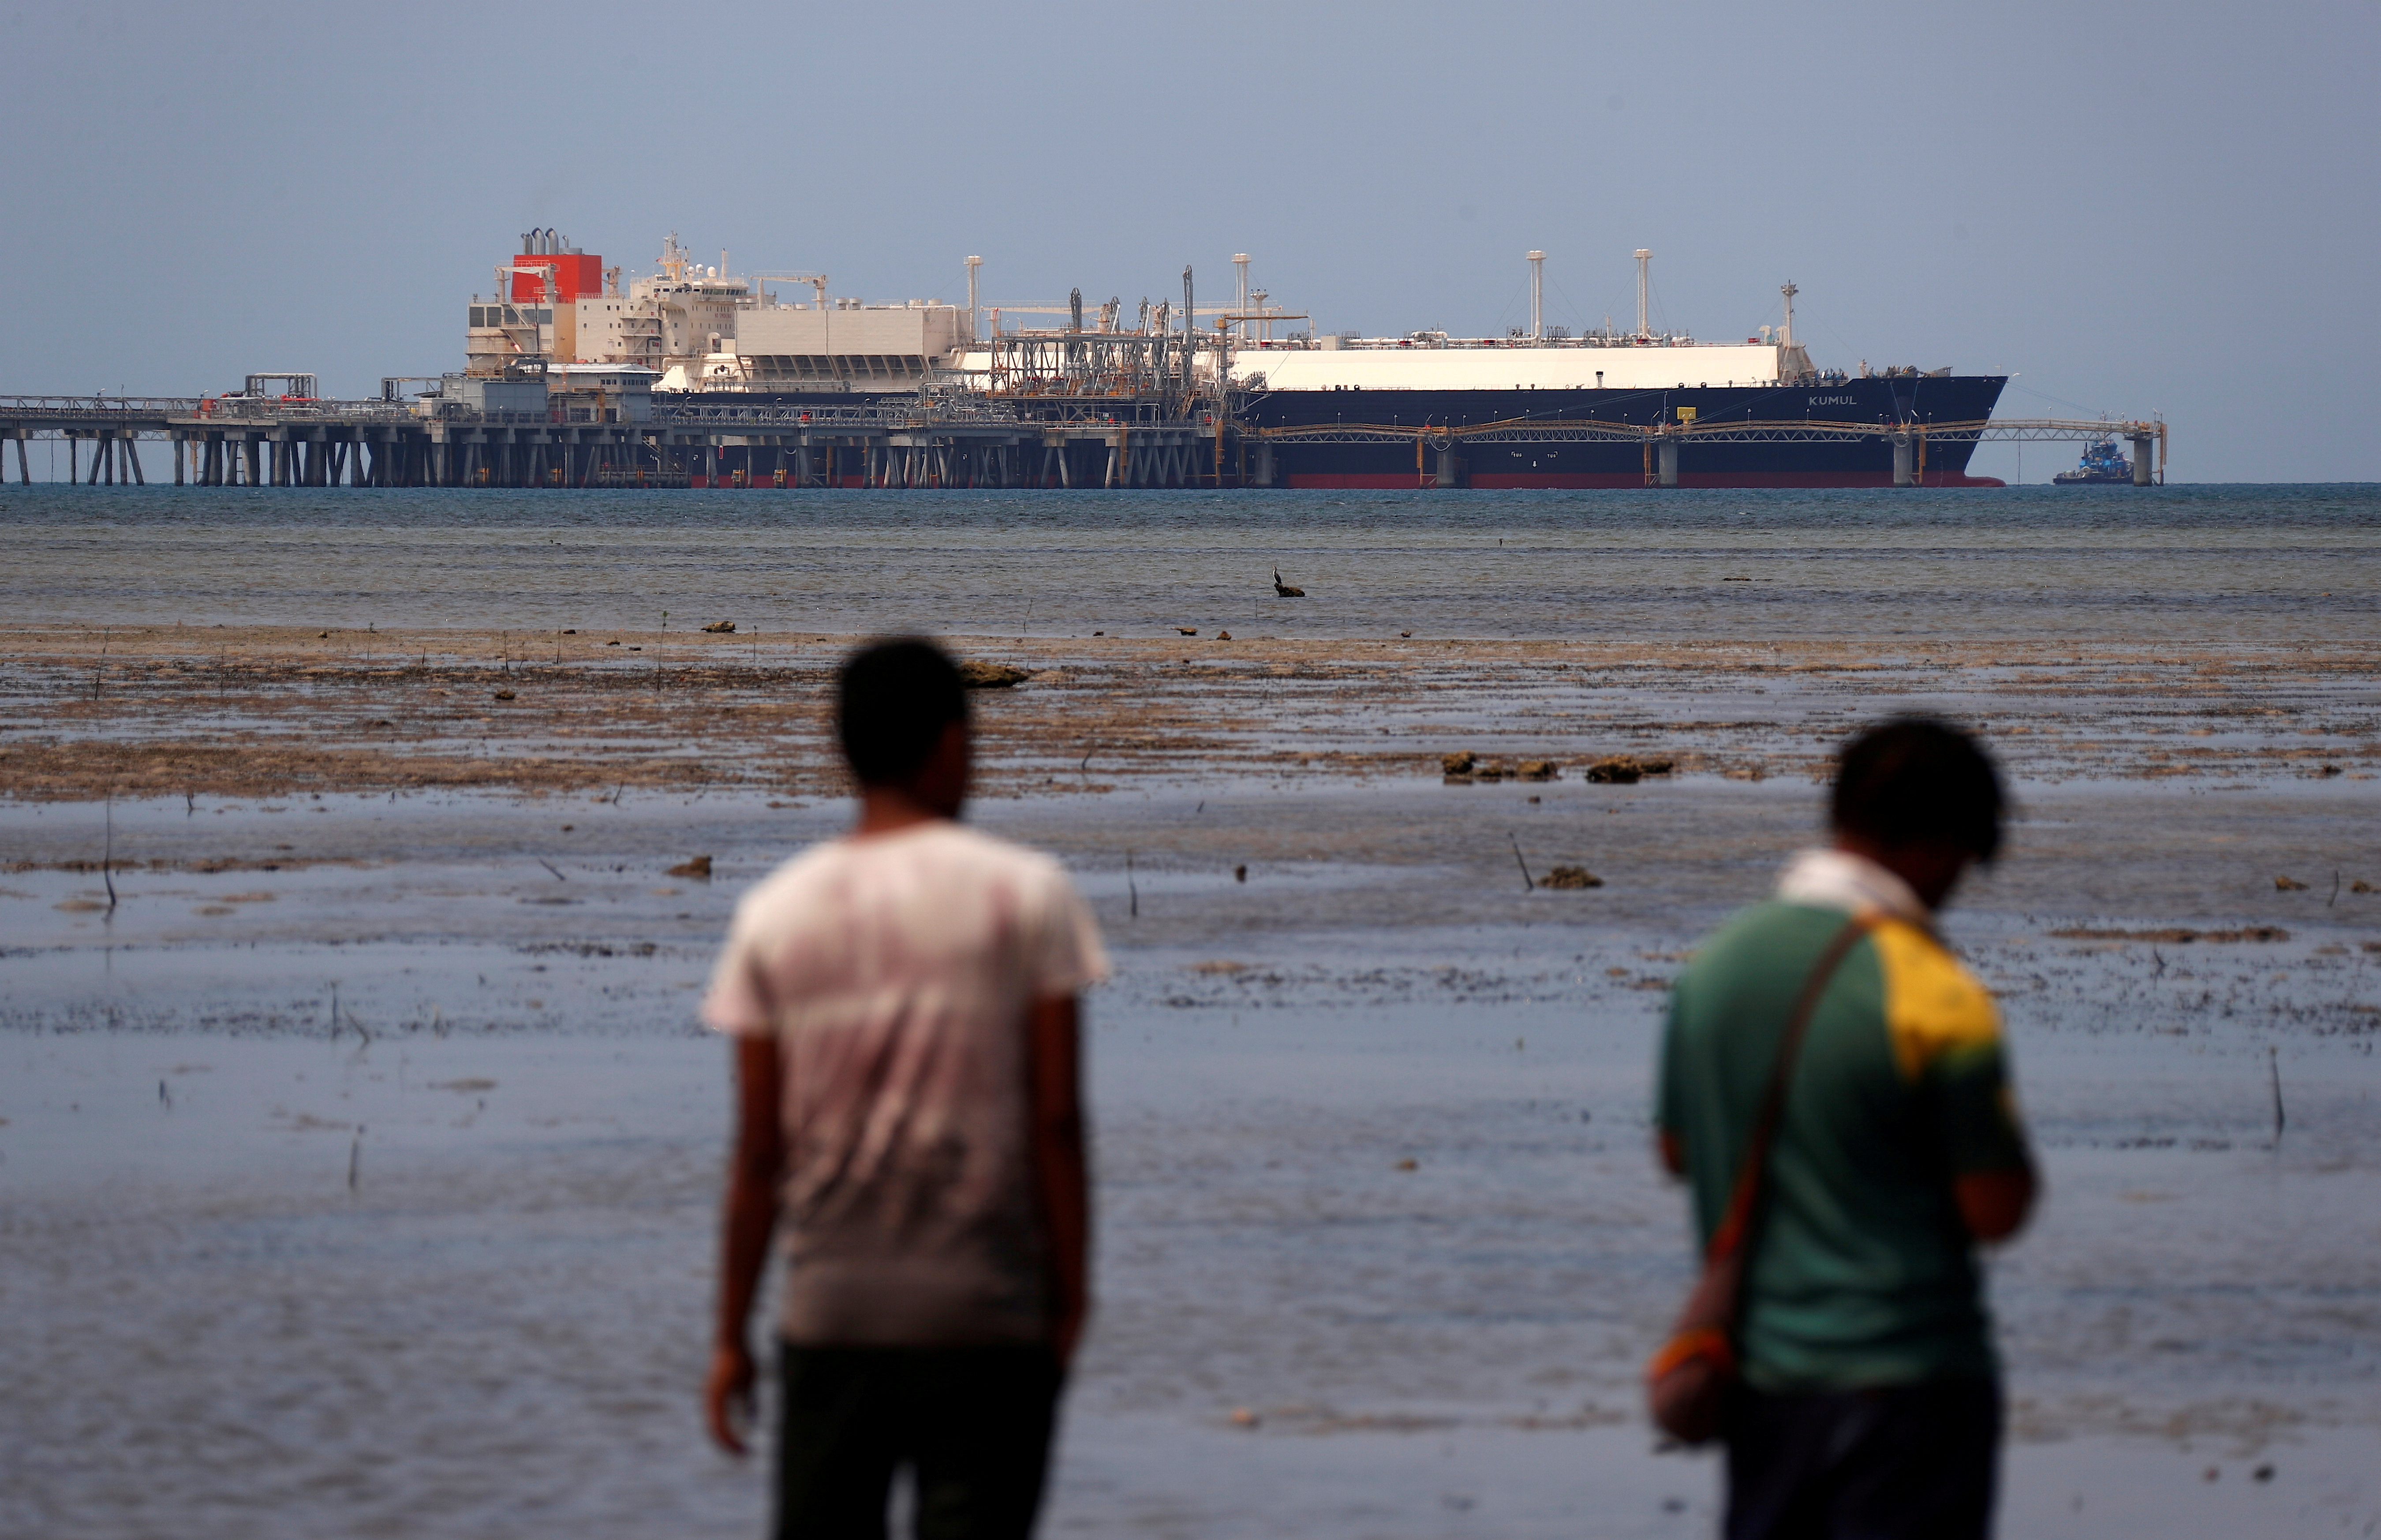 Locals walk along a small beach where a Liquefied Natural Gas (LNG) carrier called Kumul is docked at the marine facility of the ExxonMobil PNG Limited operated LNG plant at Caution Bay, located on the outskirts of Port Moresby in Papua New Guinea, November 19, 2018. REUTERS/David Gray/File Photo